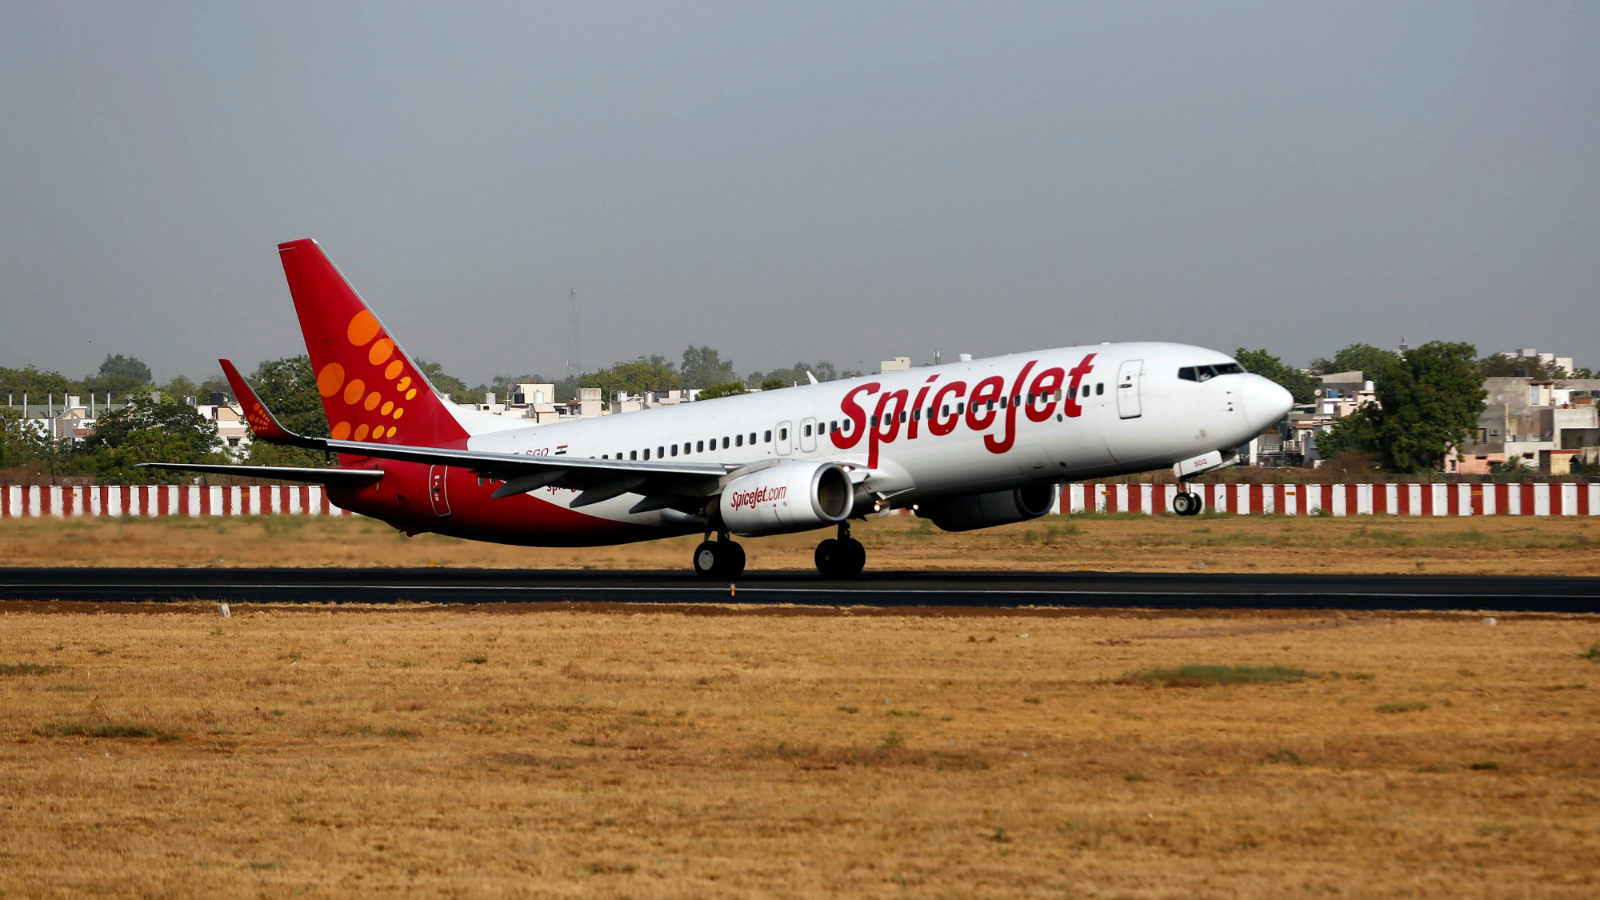 A SpiceJet passenger aircraft takes off from Sardar Vallabhbhai Patel international airport in Ahmedabad, India May 19, 2016.